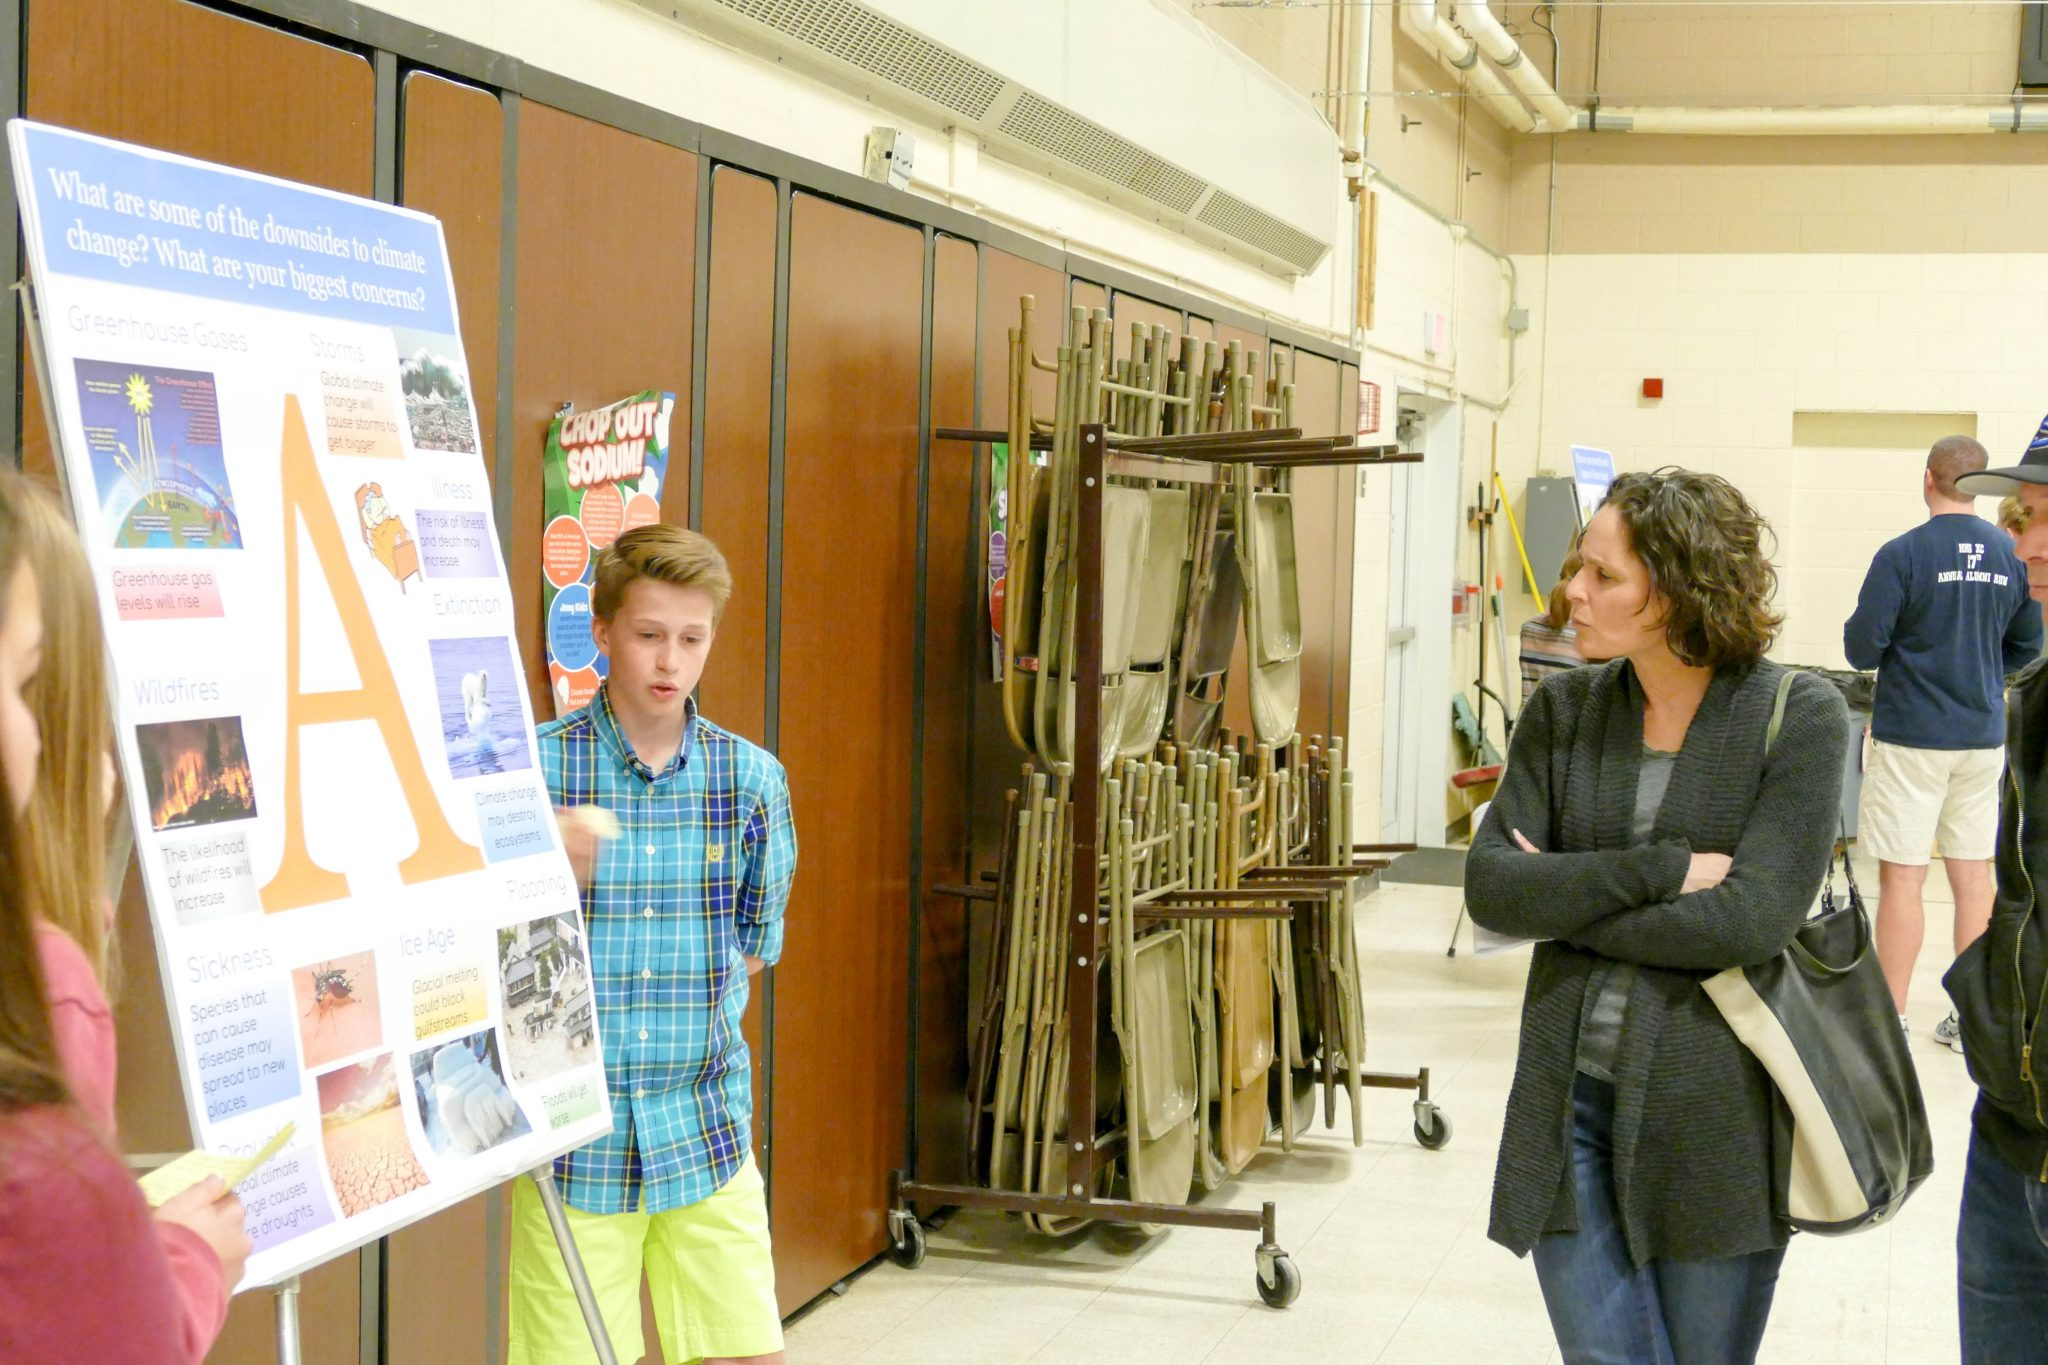 Students present a poster about climate change at a Climate in the Classroom event